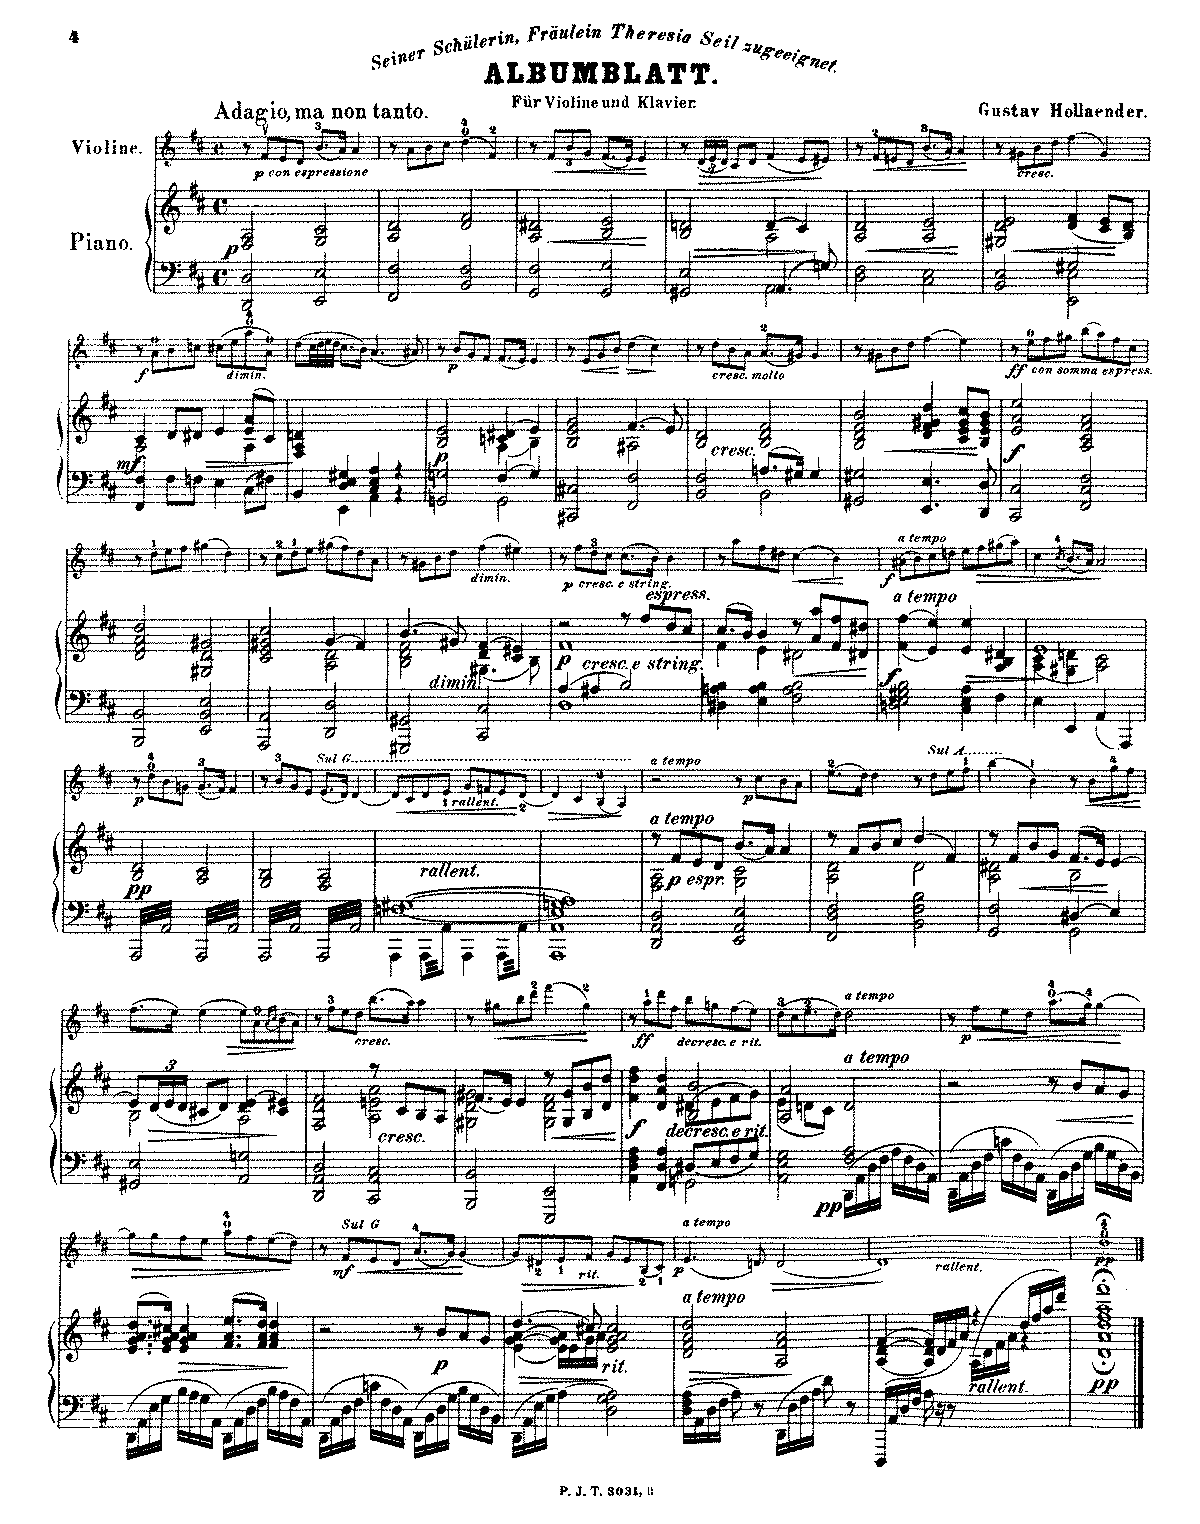 PMLP623833-GHollaender Albumblatt in D major NMZ 1884 11.pdf